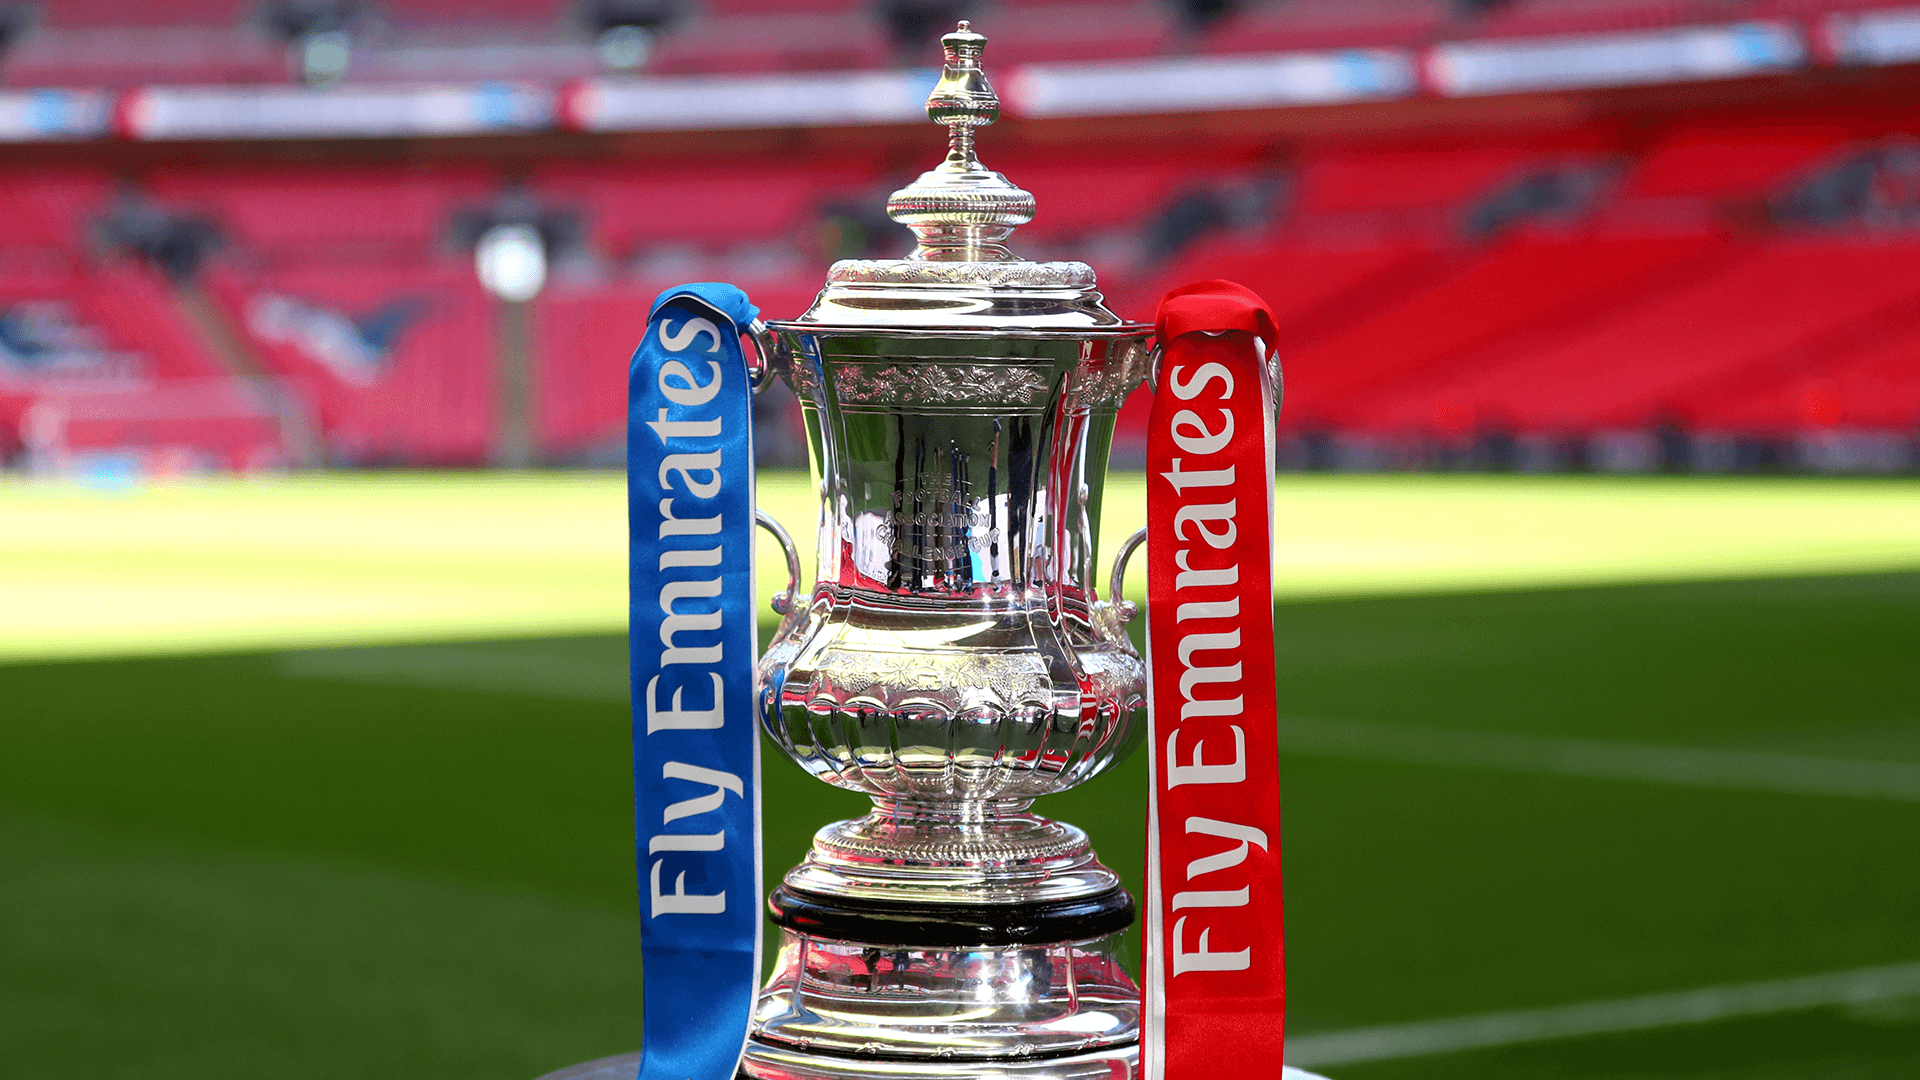 FA Cup replays have been scrapped for the 2020/21 season